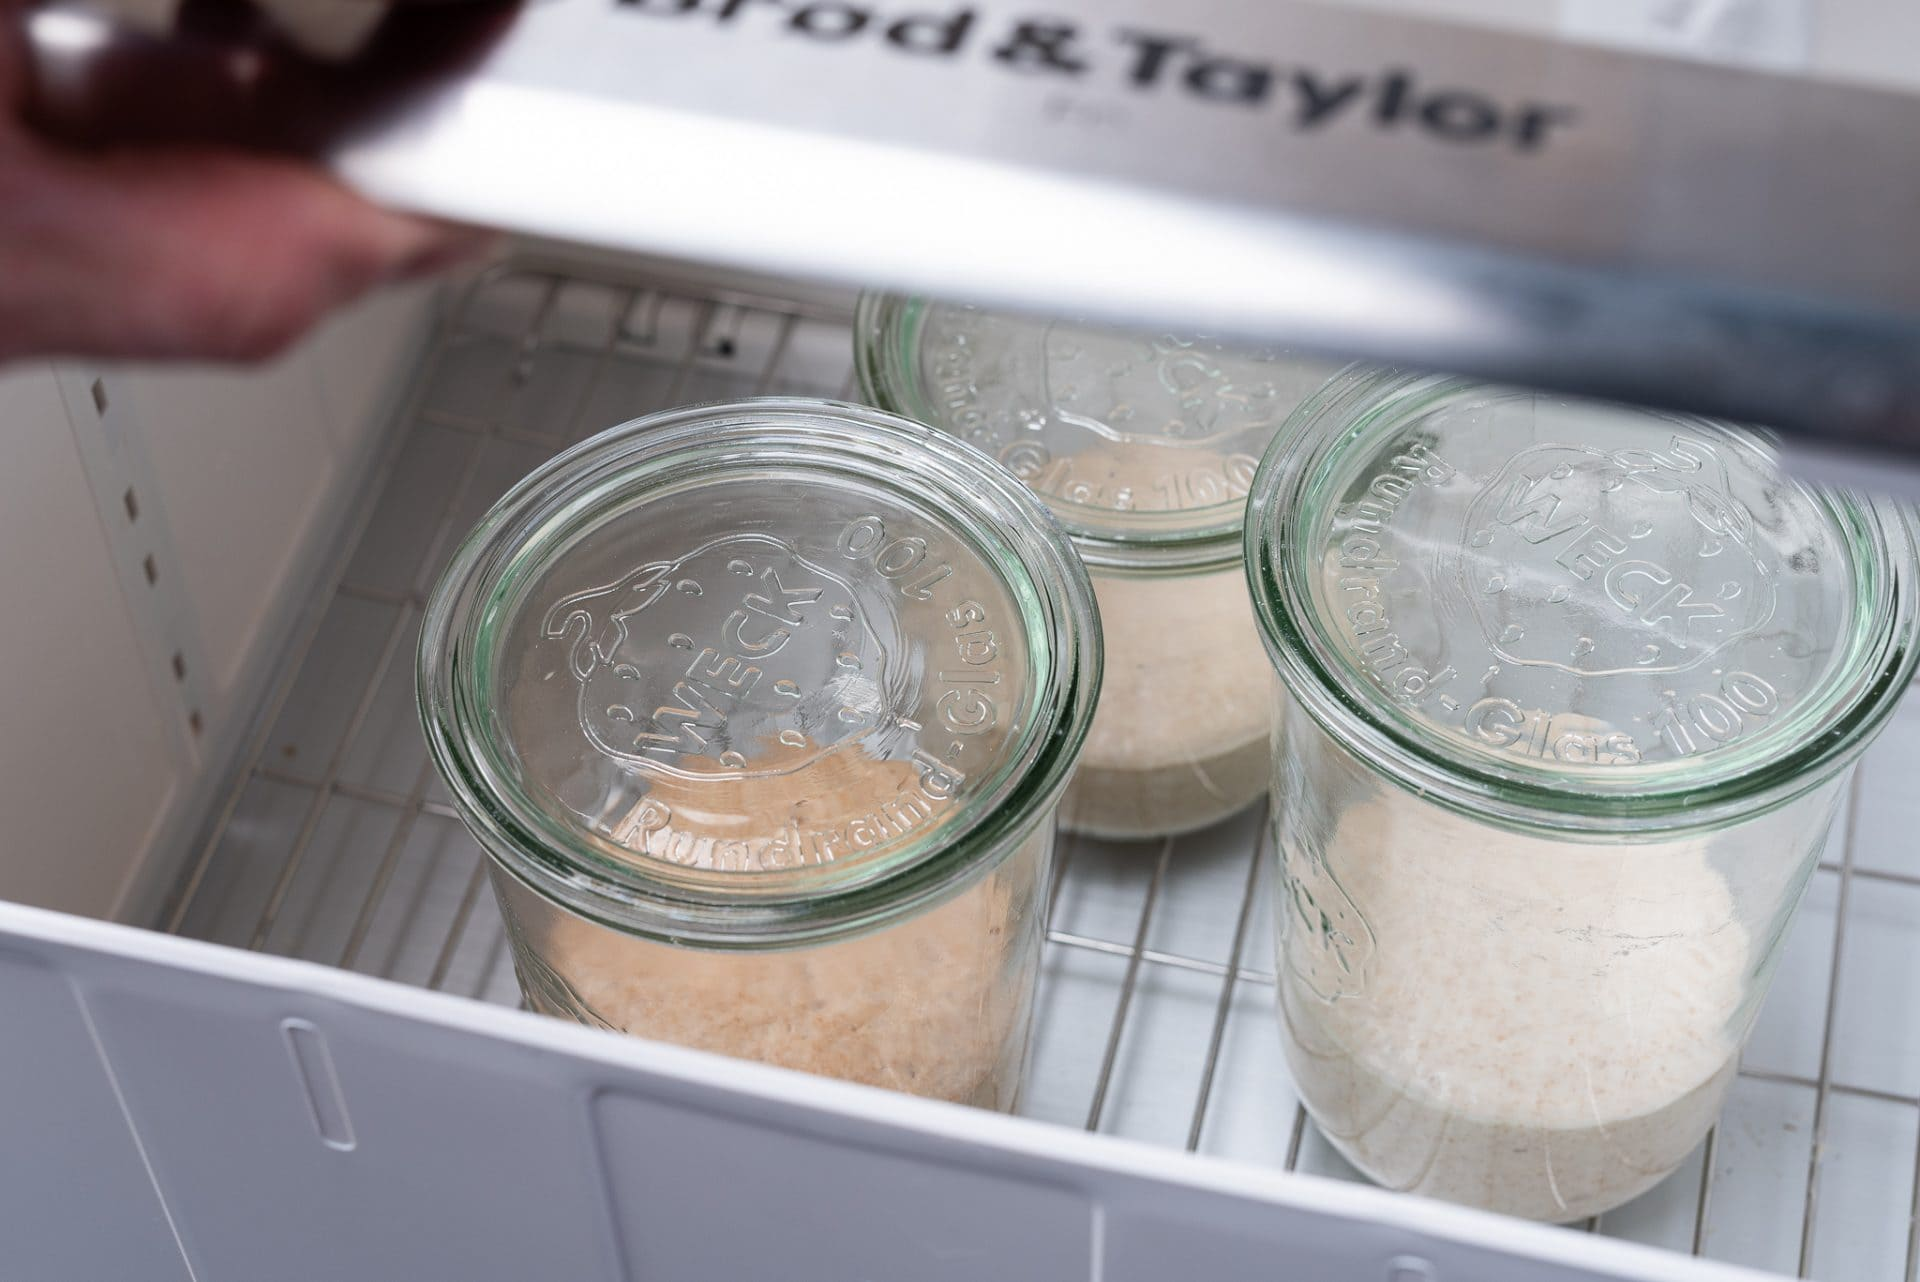 How to use the Brod and Taylor dough proofer for sourdough bread